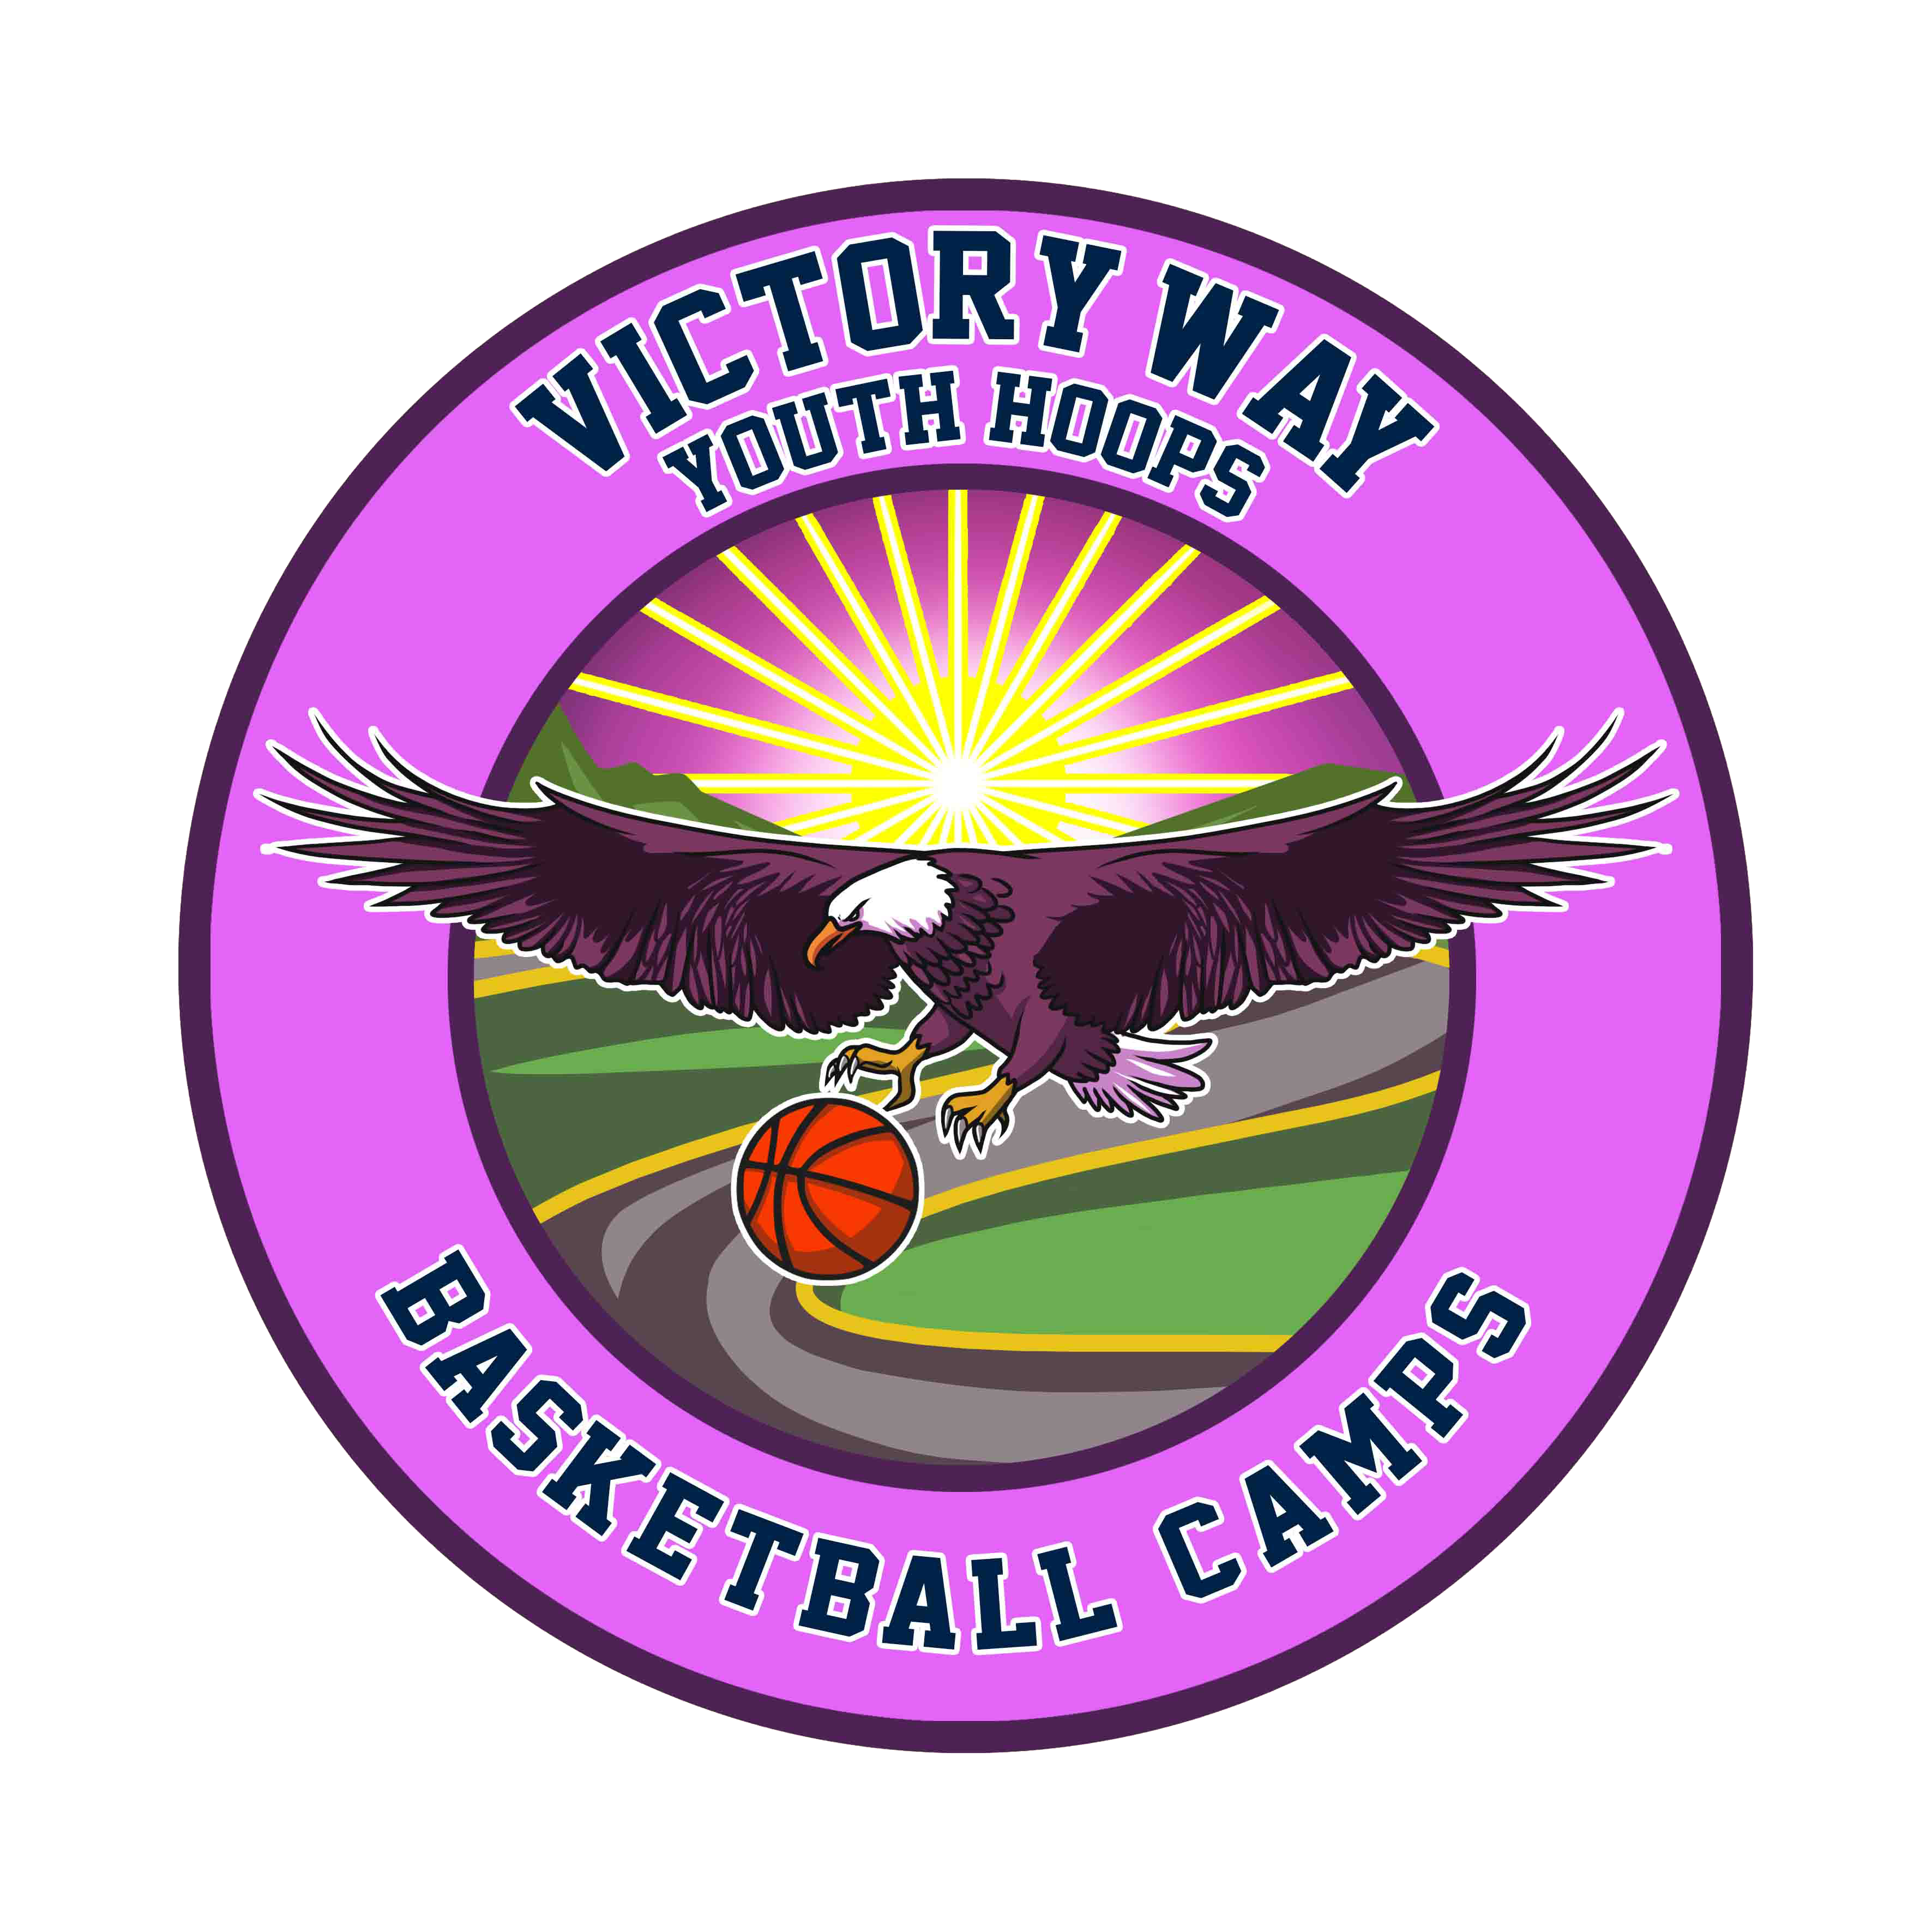 Victory Way Youth Hoops Basketball Camps Logo